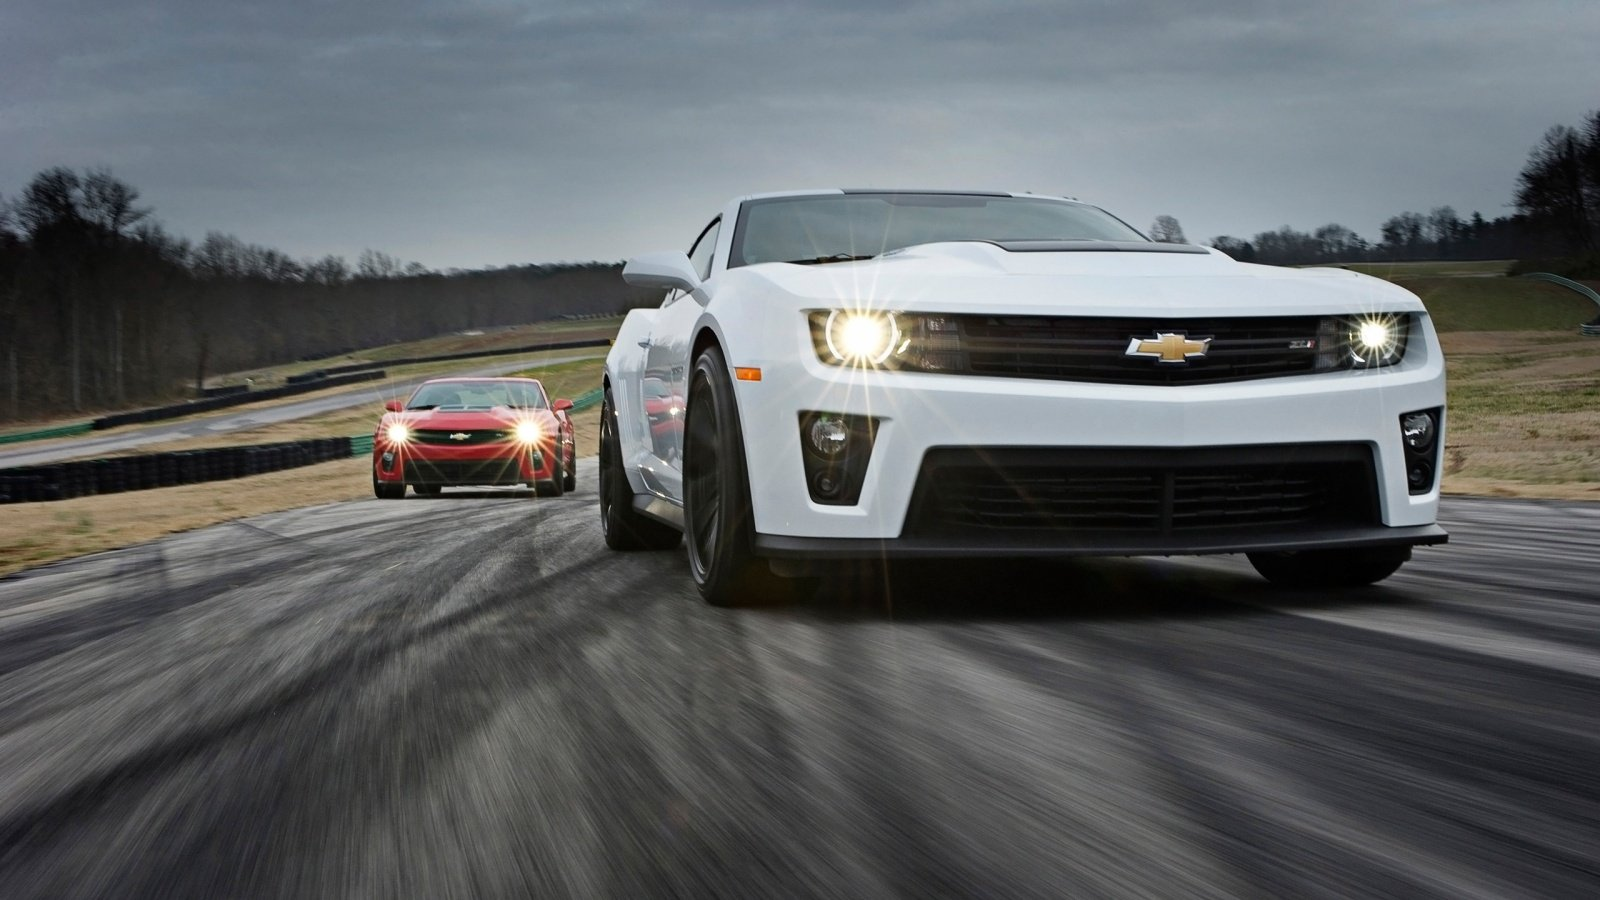 2014 Chevrolet Camaro ZL1 Wallpaper HD Car Wallpapers 1600x900